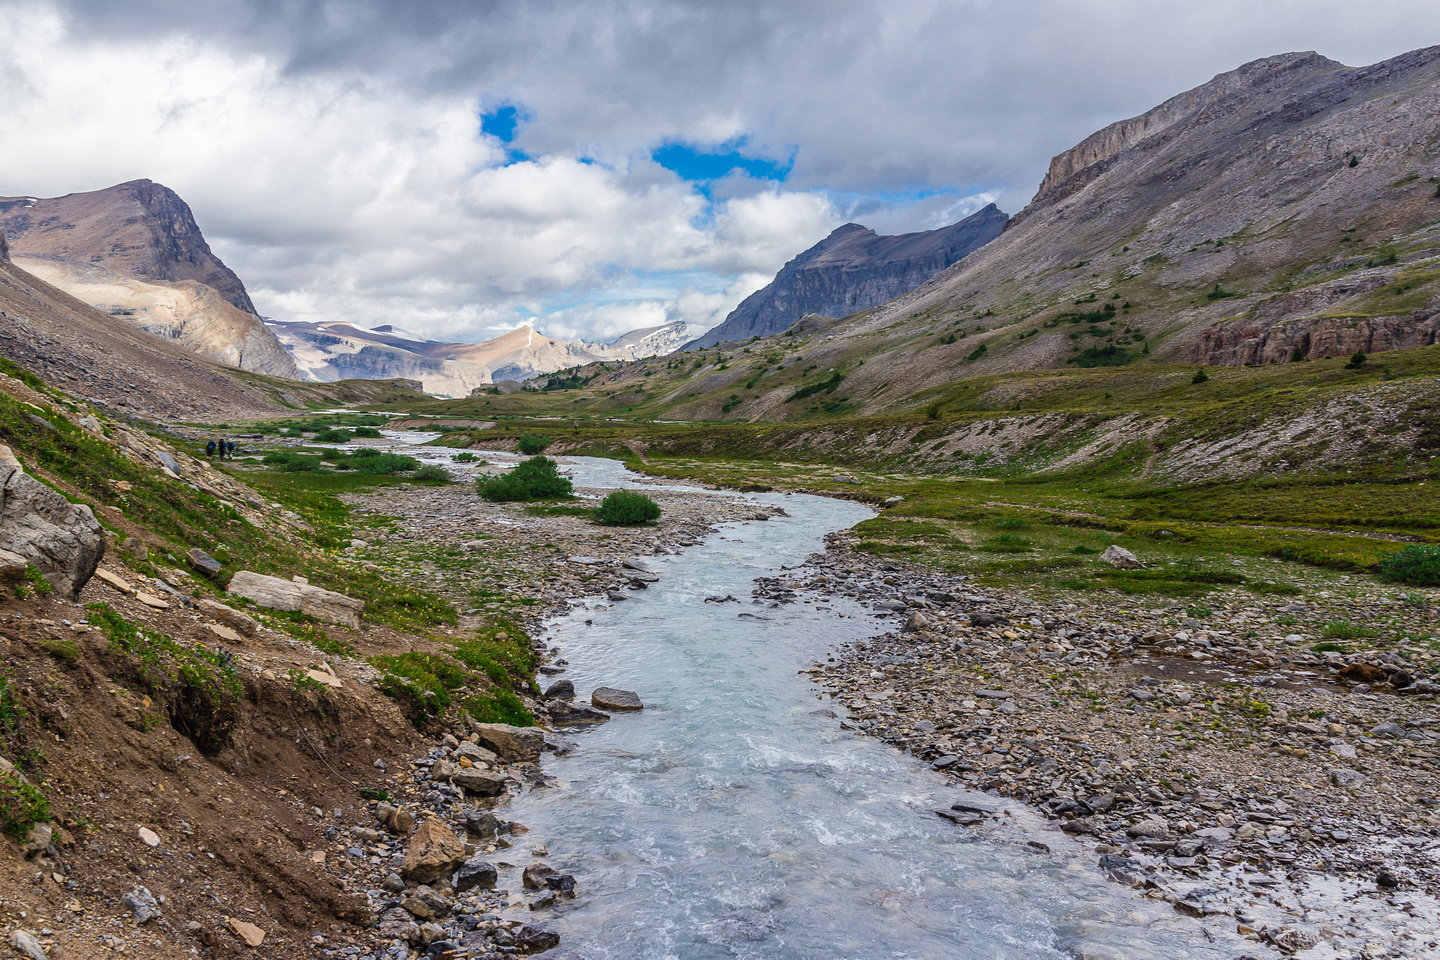 This is where we stayed on the left (west) side of Dolomite Creek while the trail crossed over.